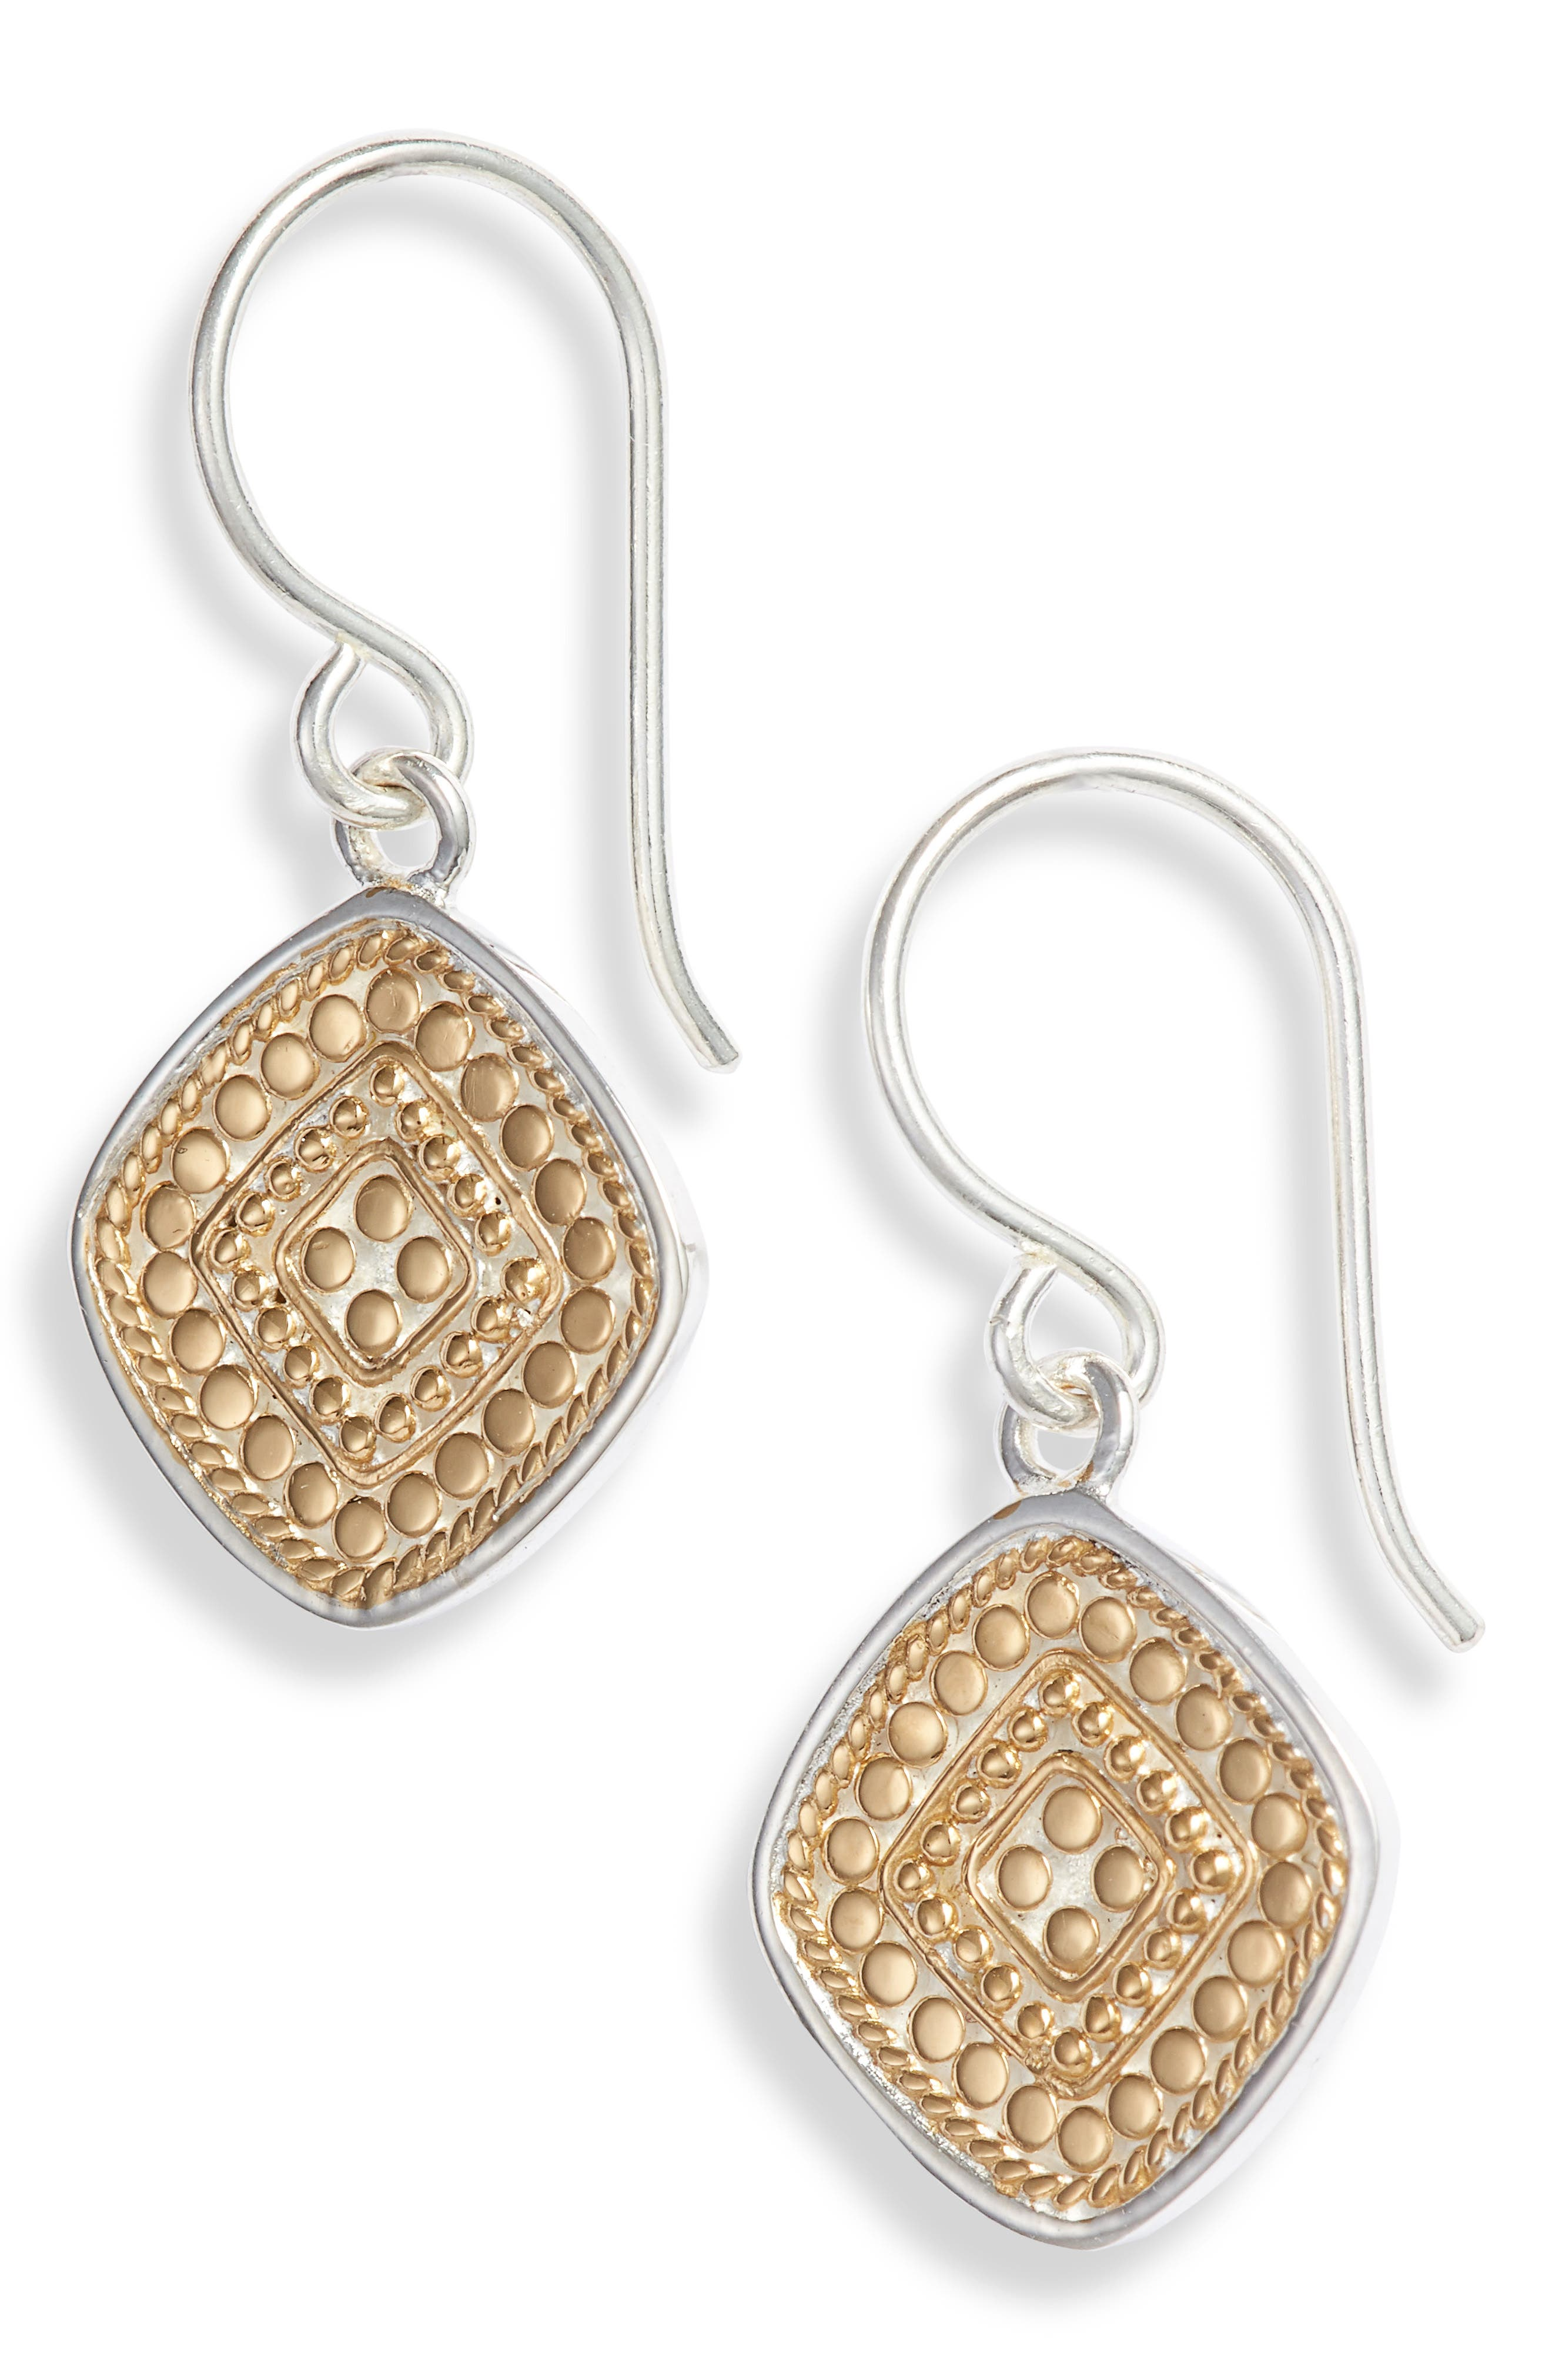 ANNA BECK Beaded Drop Earrings in Gold/ Silver